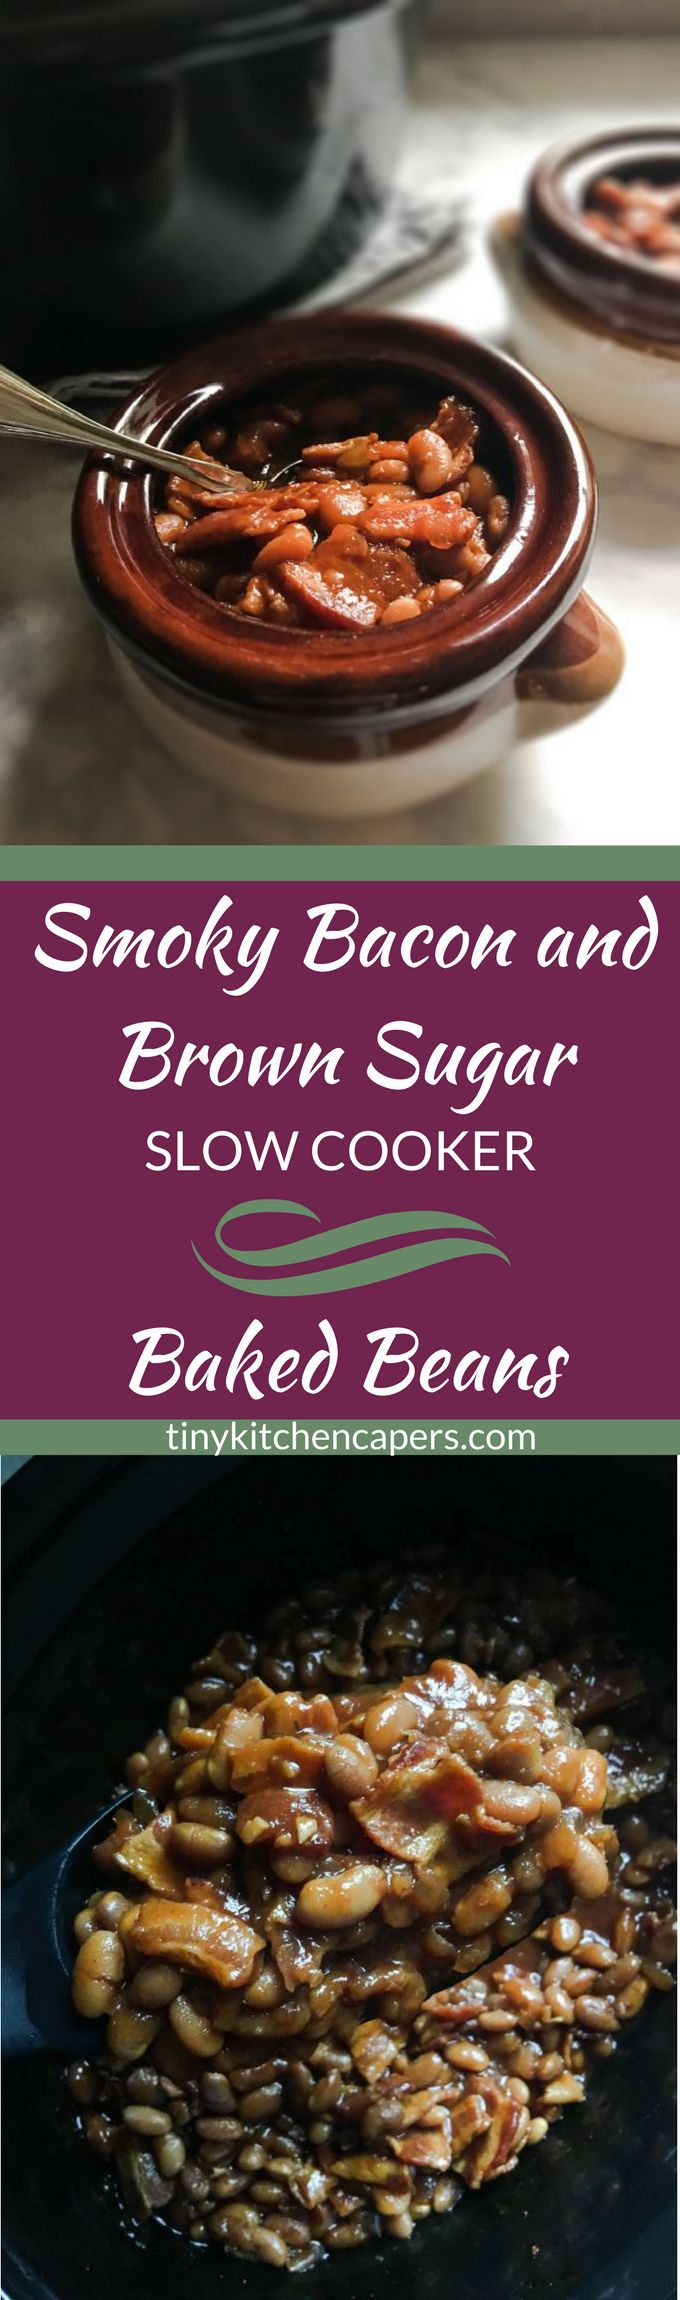 Made from scratch slow cooker baked beans with applewood smoked bacon in a sweet sauce of brown sugar, maple, and so much more! | tinykitchencapers.com